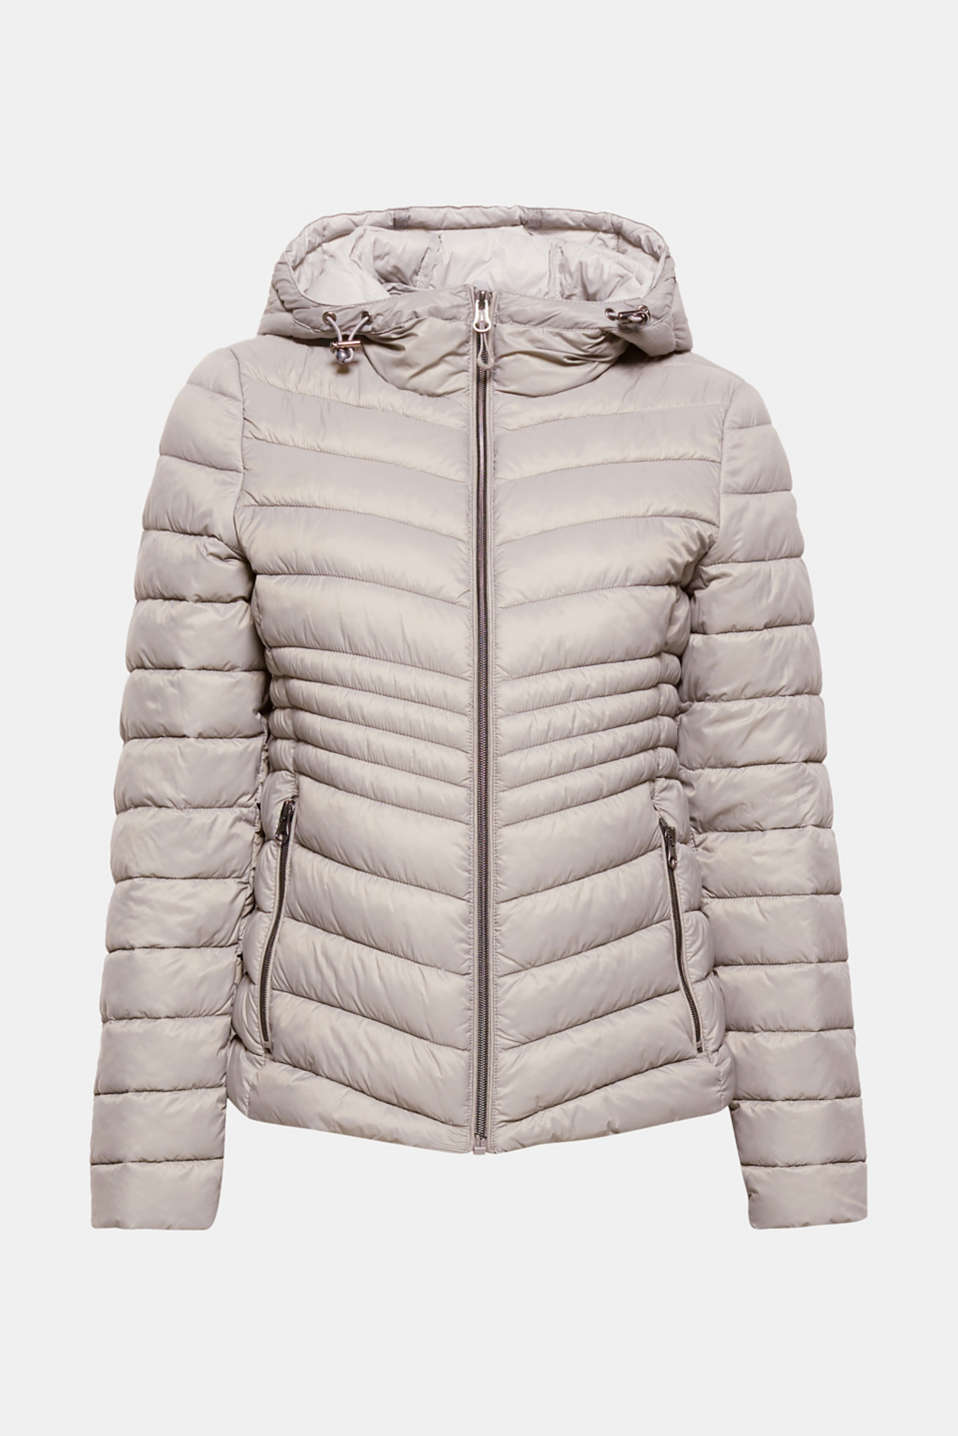 This lightweight quilted jacket is ultra functional and has Thinsulate padding and a sporty hood that retains body heat.